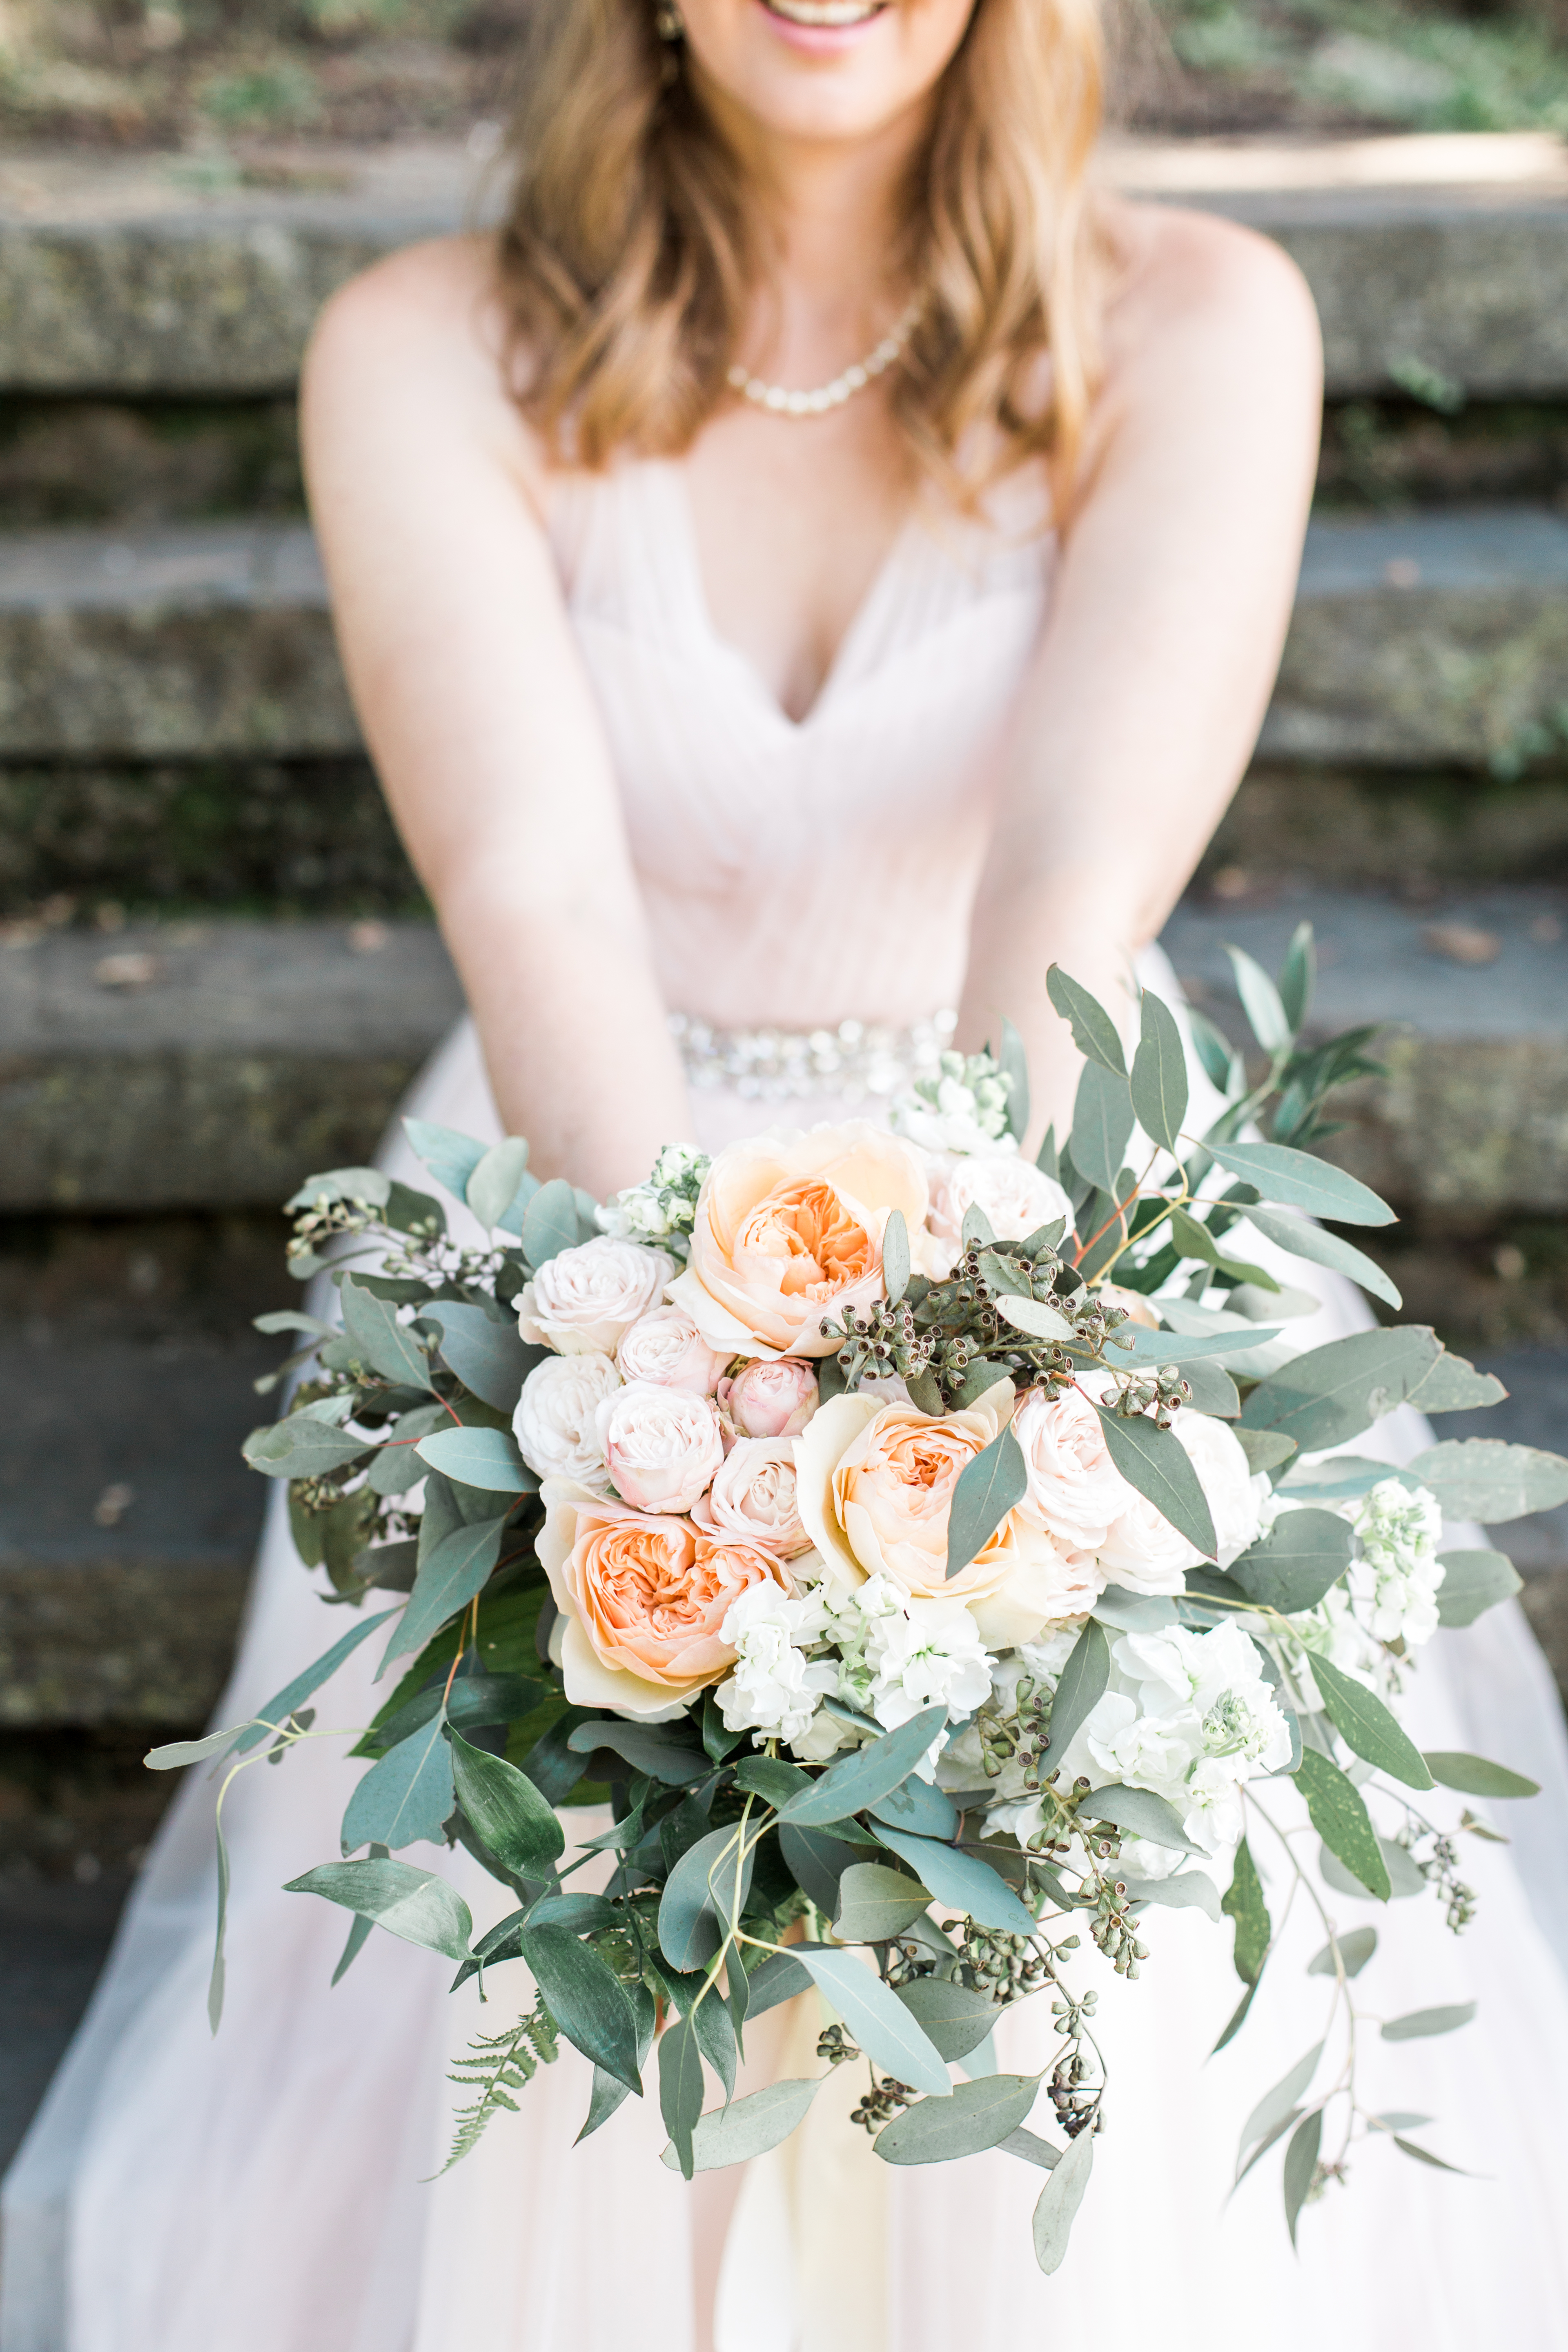 KristinaStaalPhotography-TheCapableBride-20